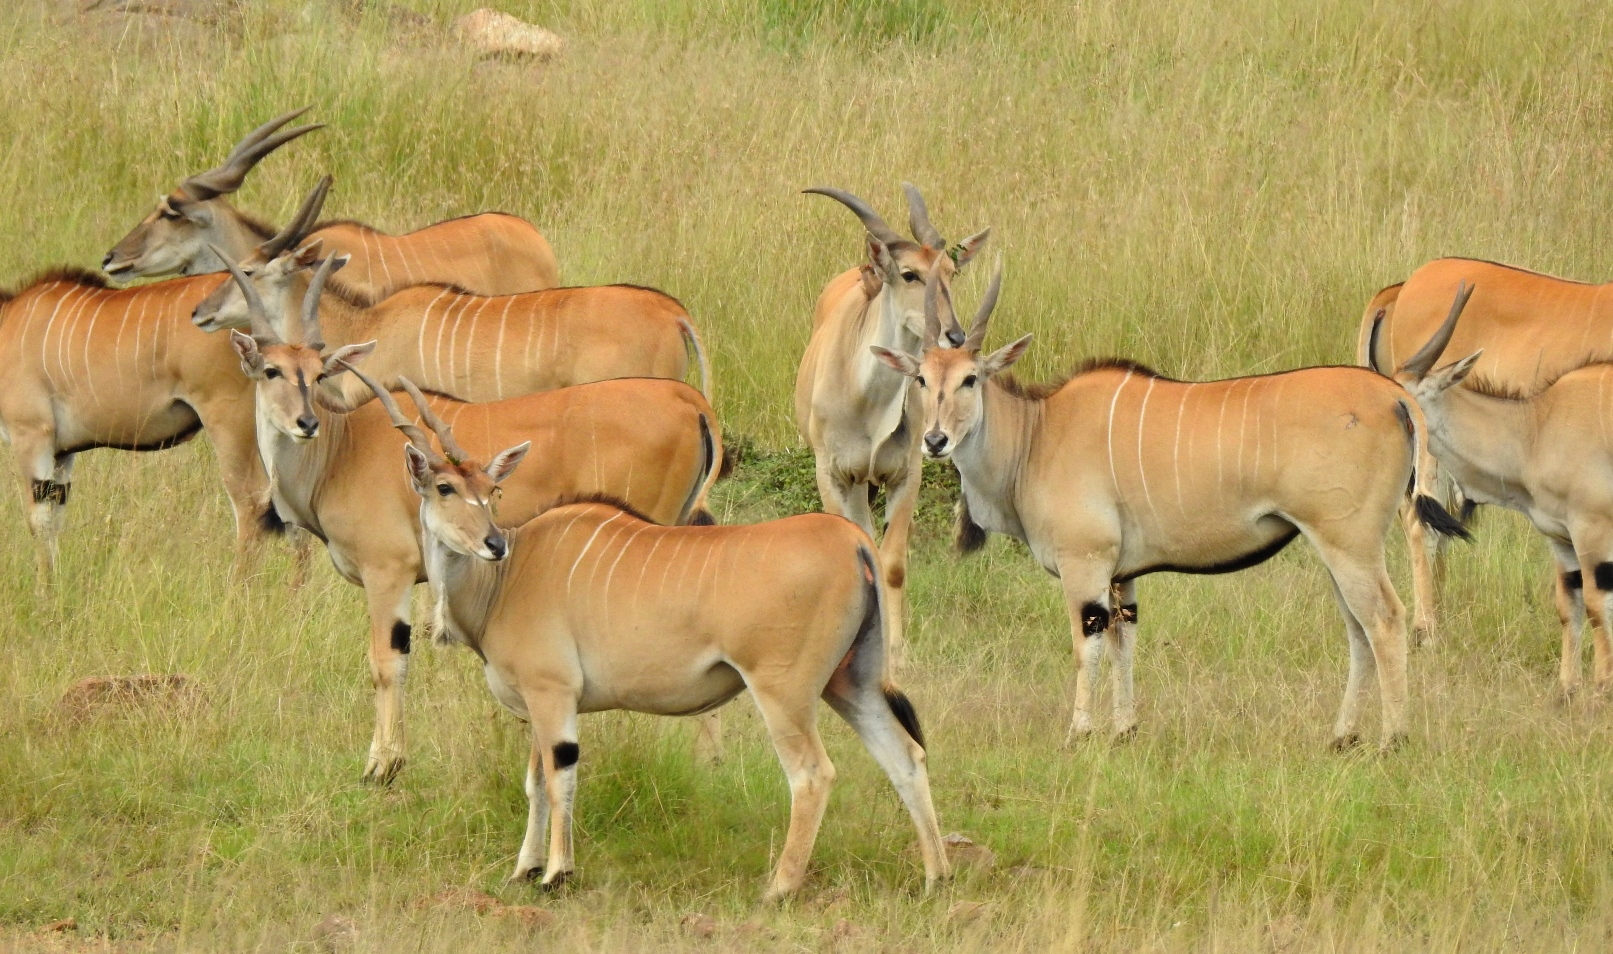 Elands are the world's largest antelope and join the Serengeti-Mara migration, though in smaller numbers than gazelles or wildebeest.